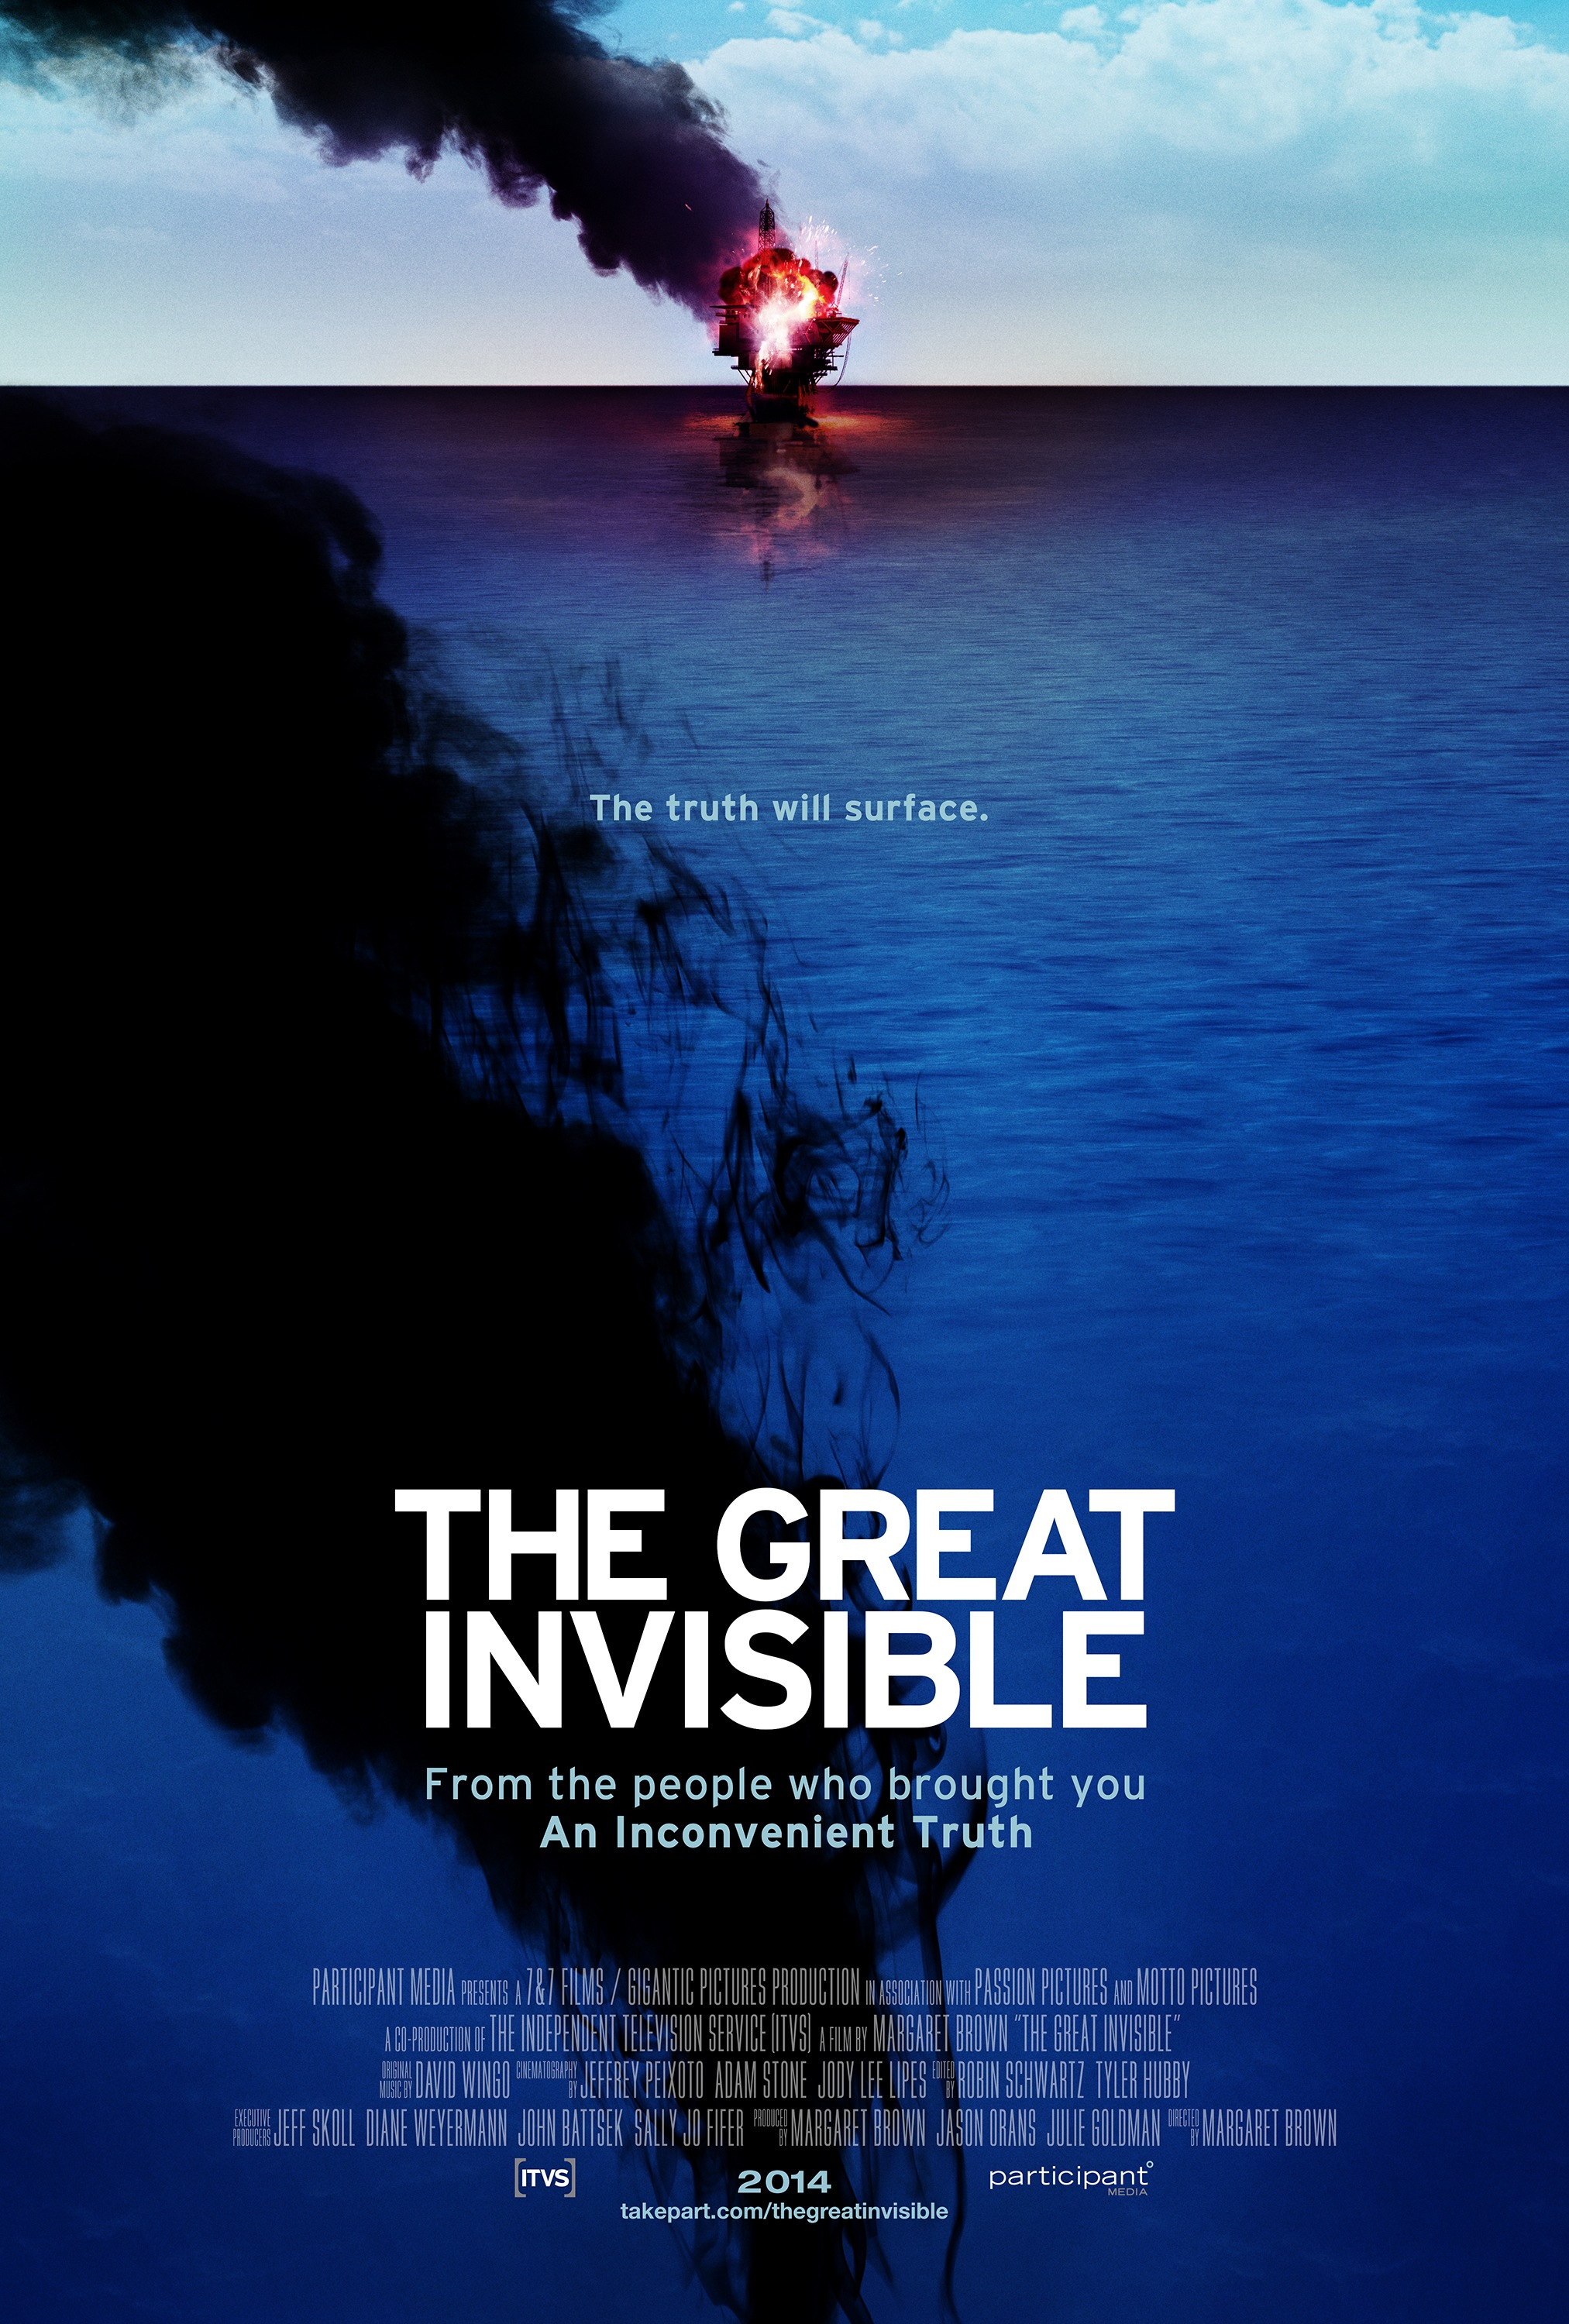 invisible poster movie horizon oil rig deepwater documentary spill gulf mexico today environmental disaster explosion